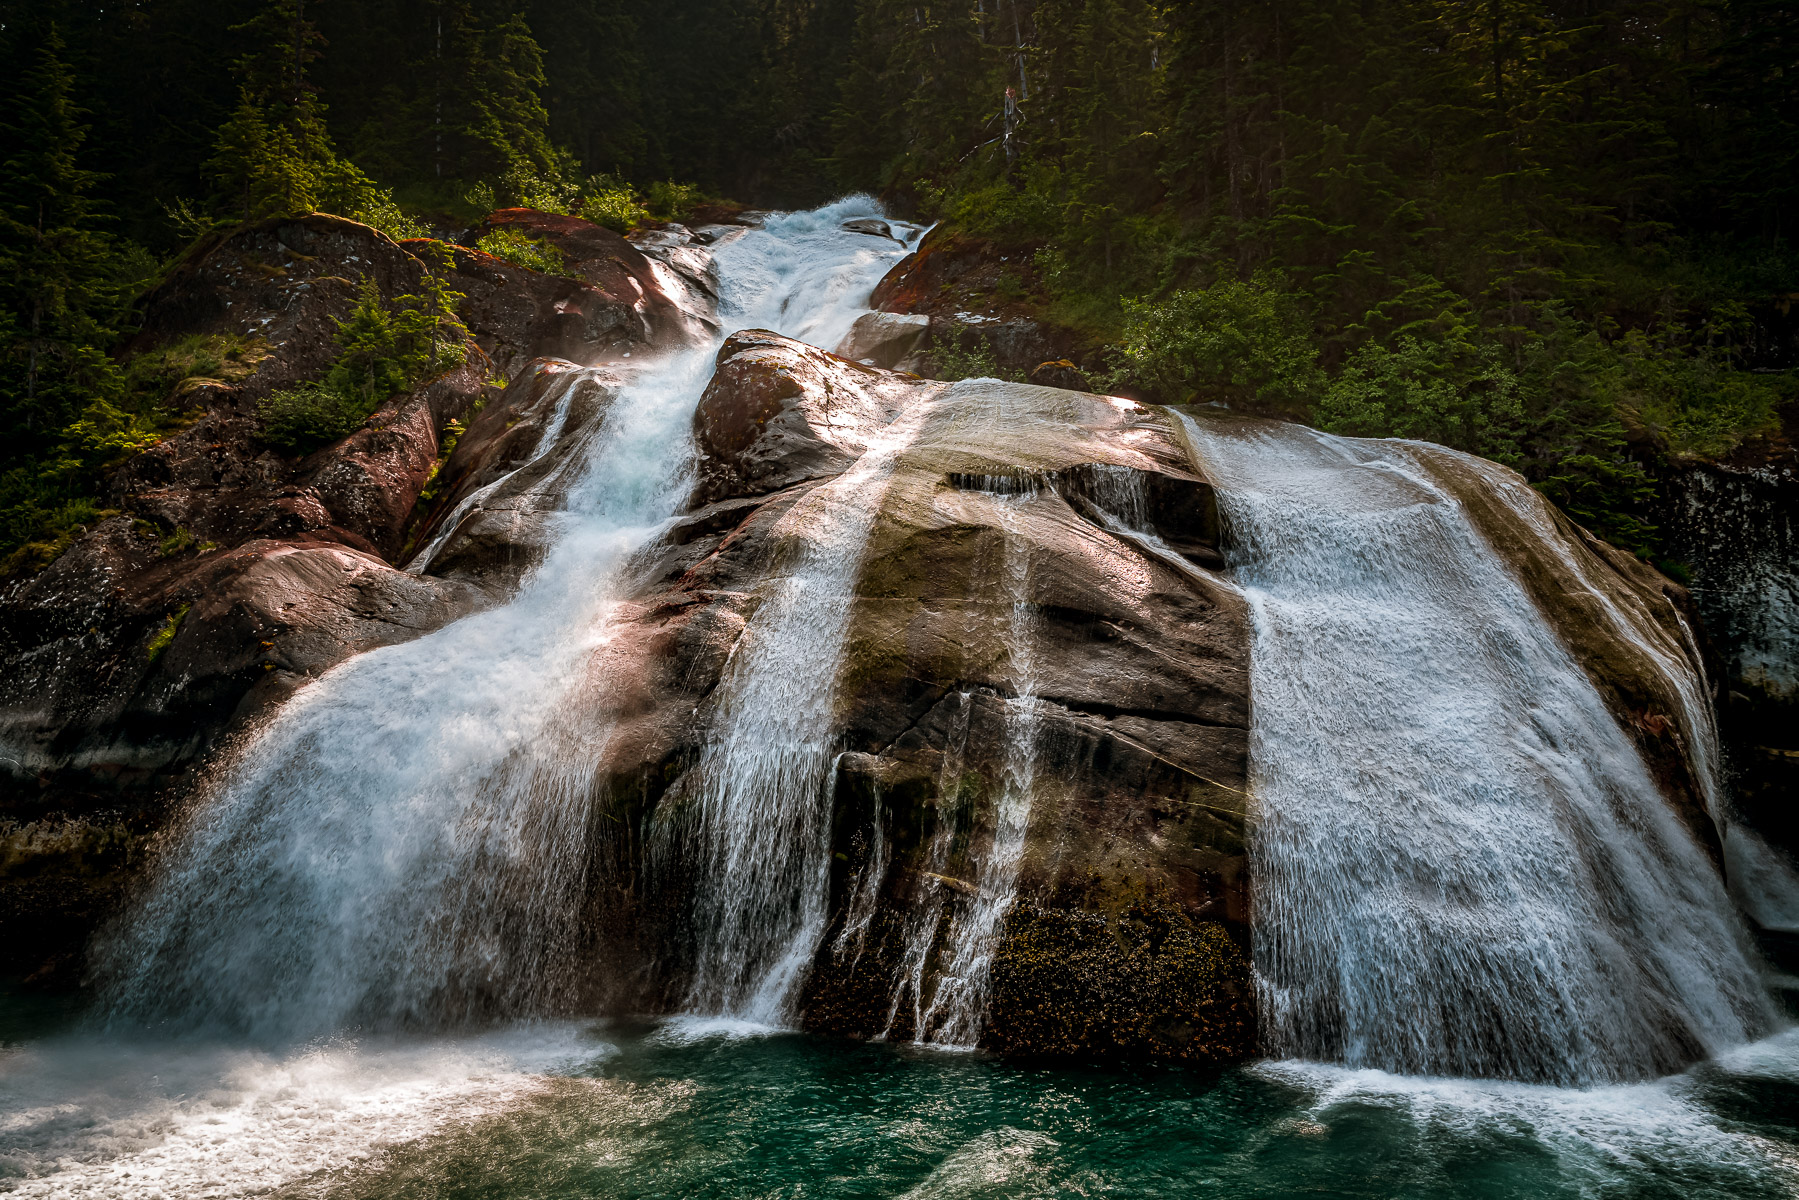 A waterfall emerges from the forest along the shore of Alaska's Tracy Arm Fjord.